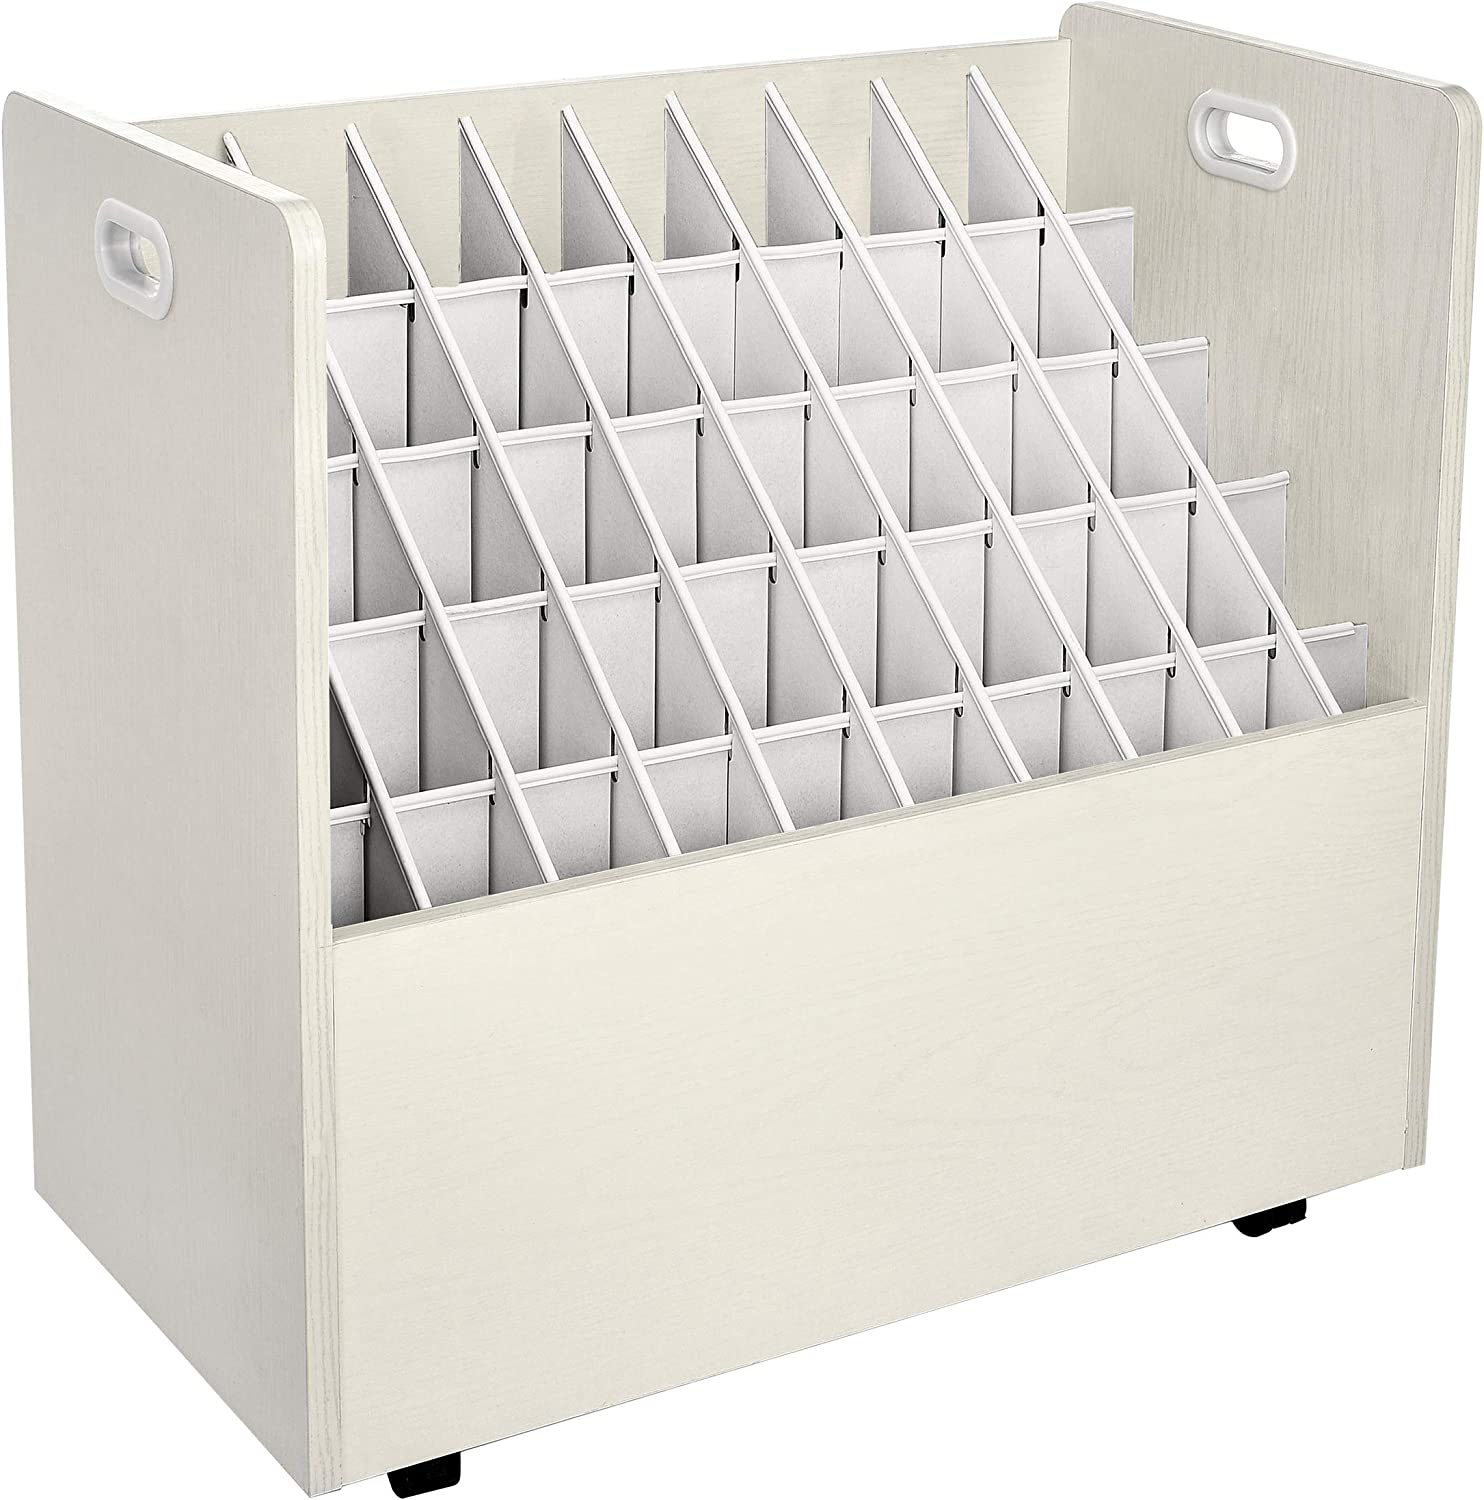 AdirOffice Mobile Wood Blueprint Roll File - Sturdy, Heavy Duty Large Document Organizer - Convenient Storage for Home Office or School Use (50 Slots, White)